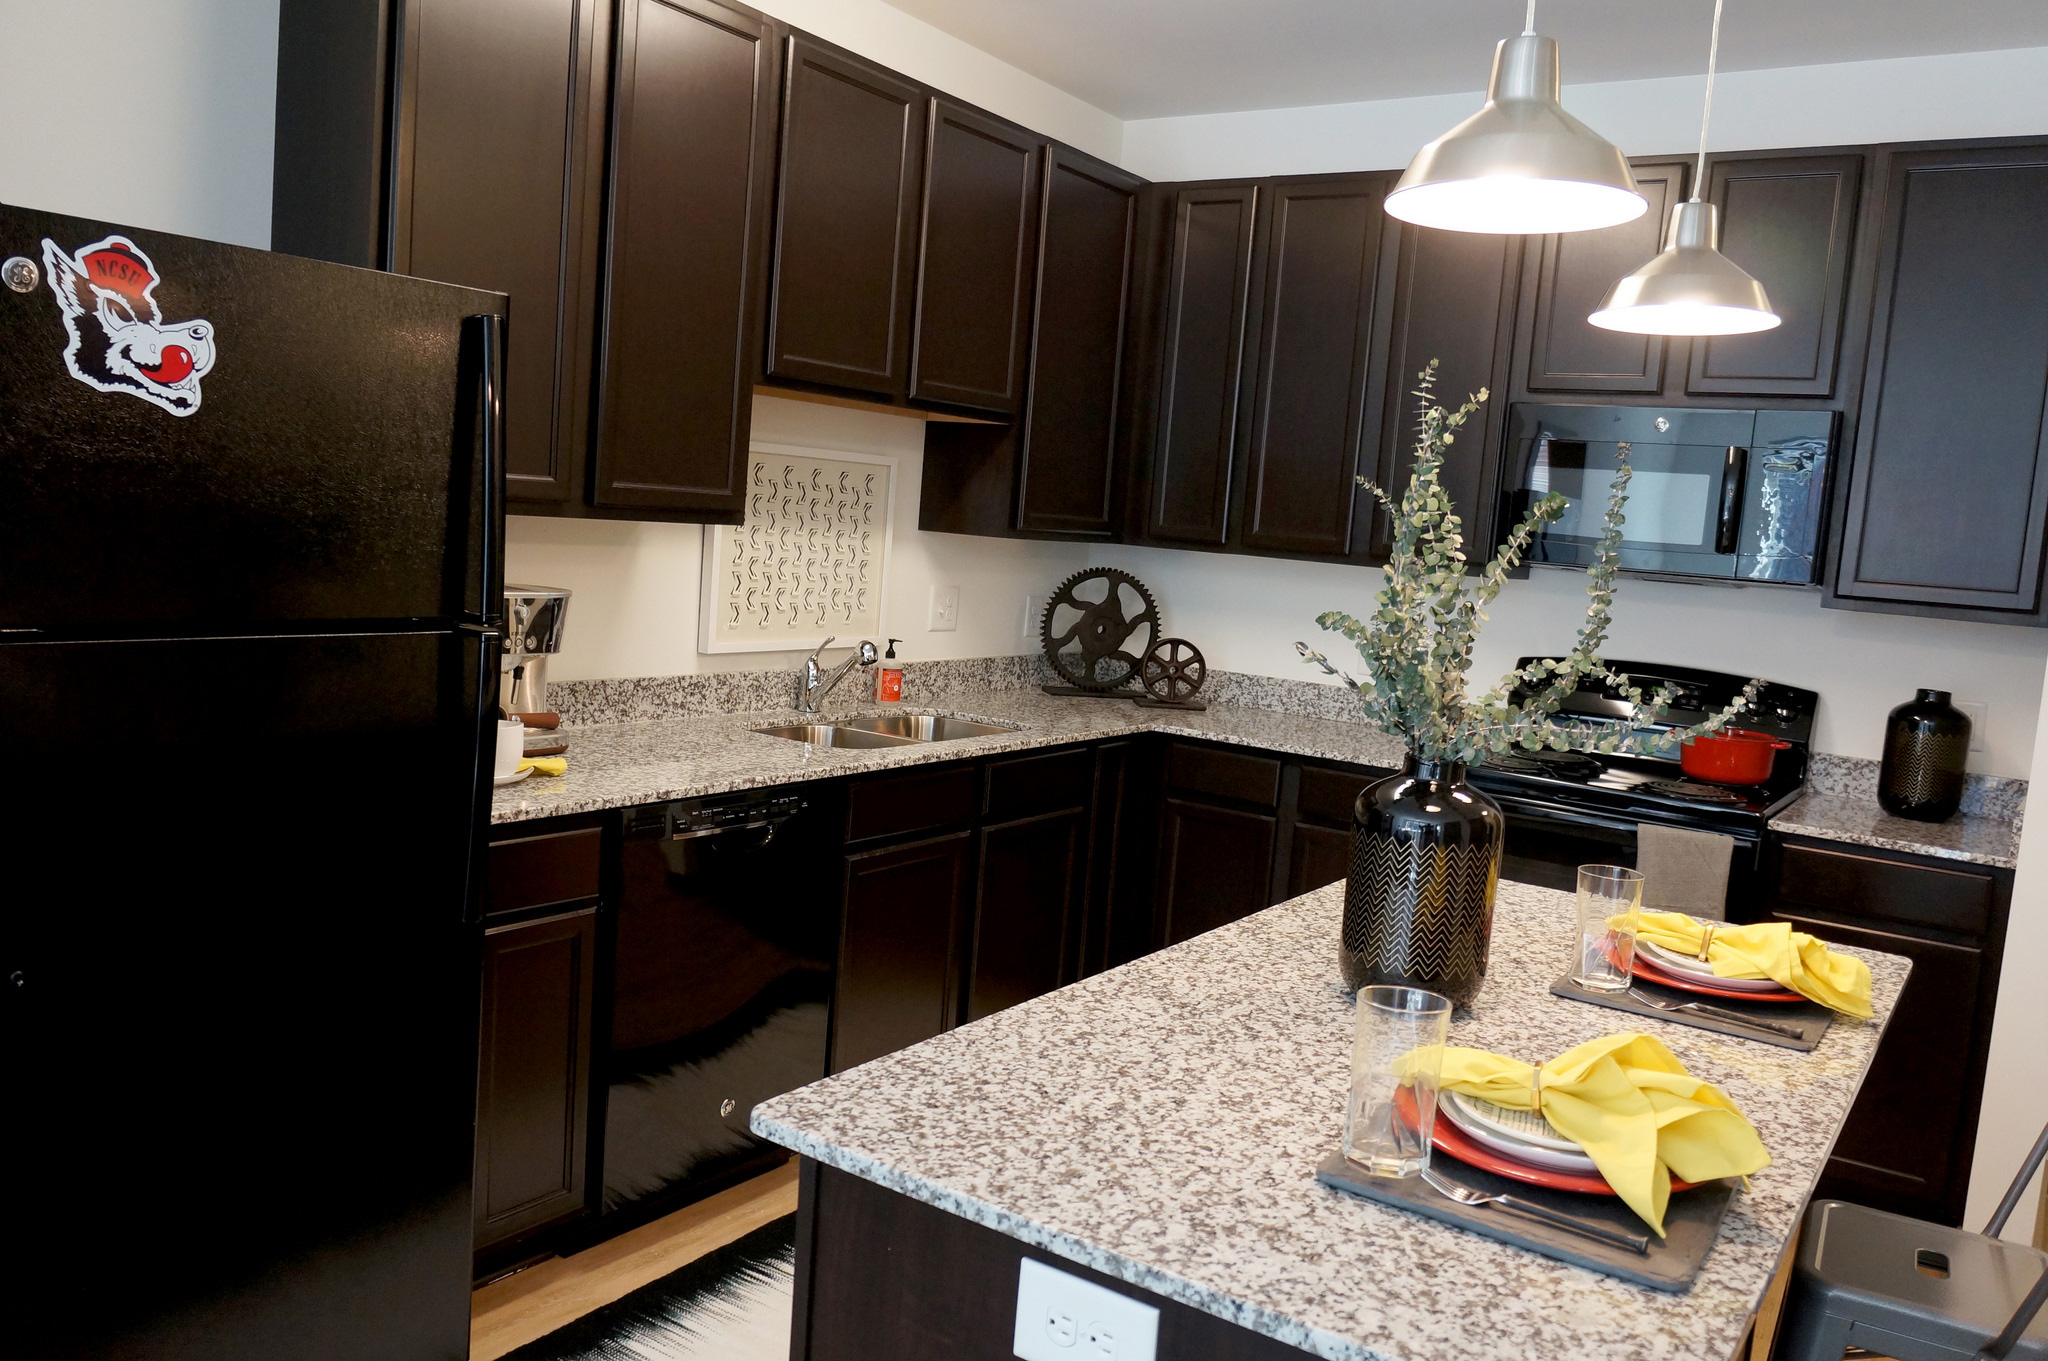 Raleigh student apartment amenities stanhope student - 1 bedroom apartments raleigh nc under 600 ...